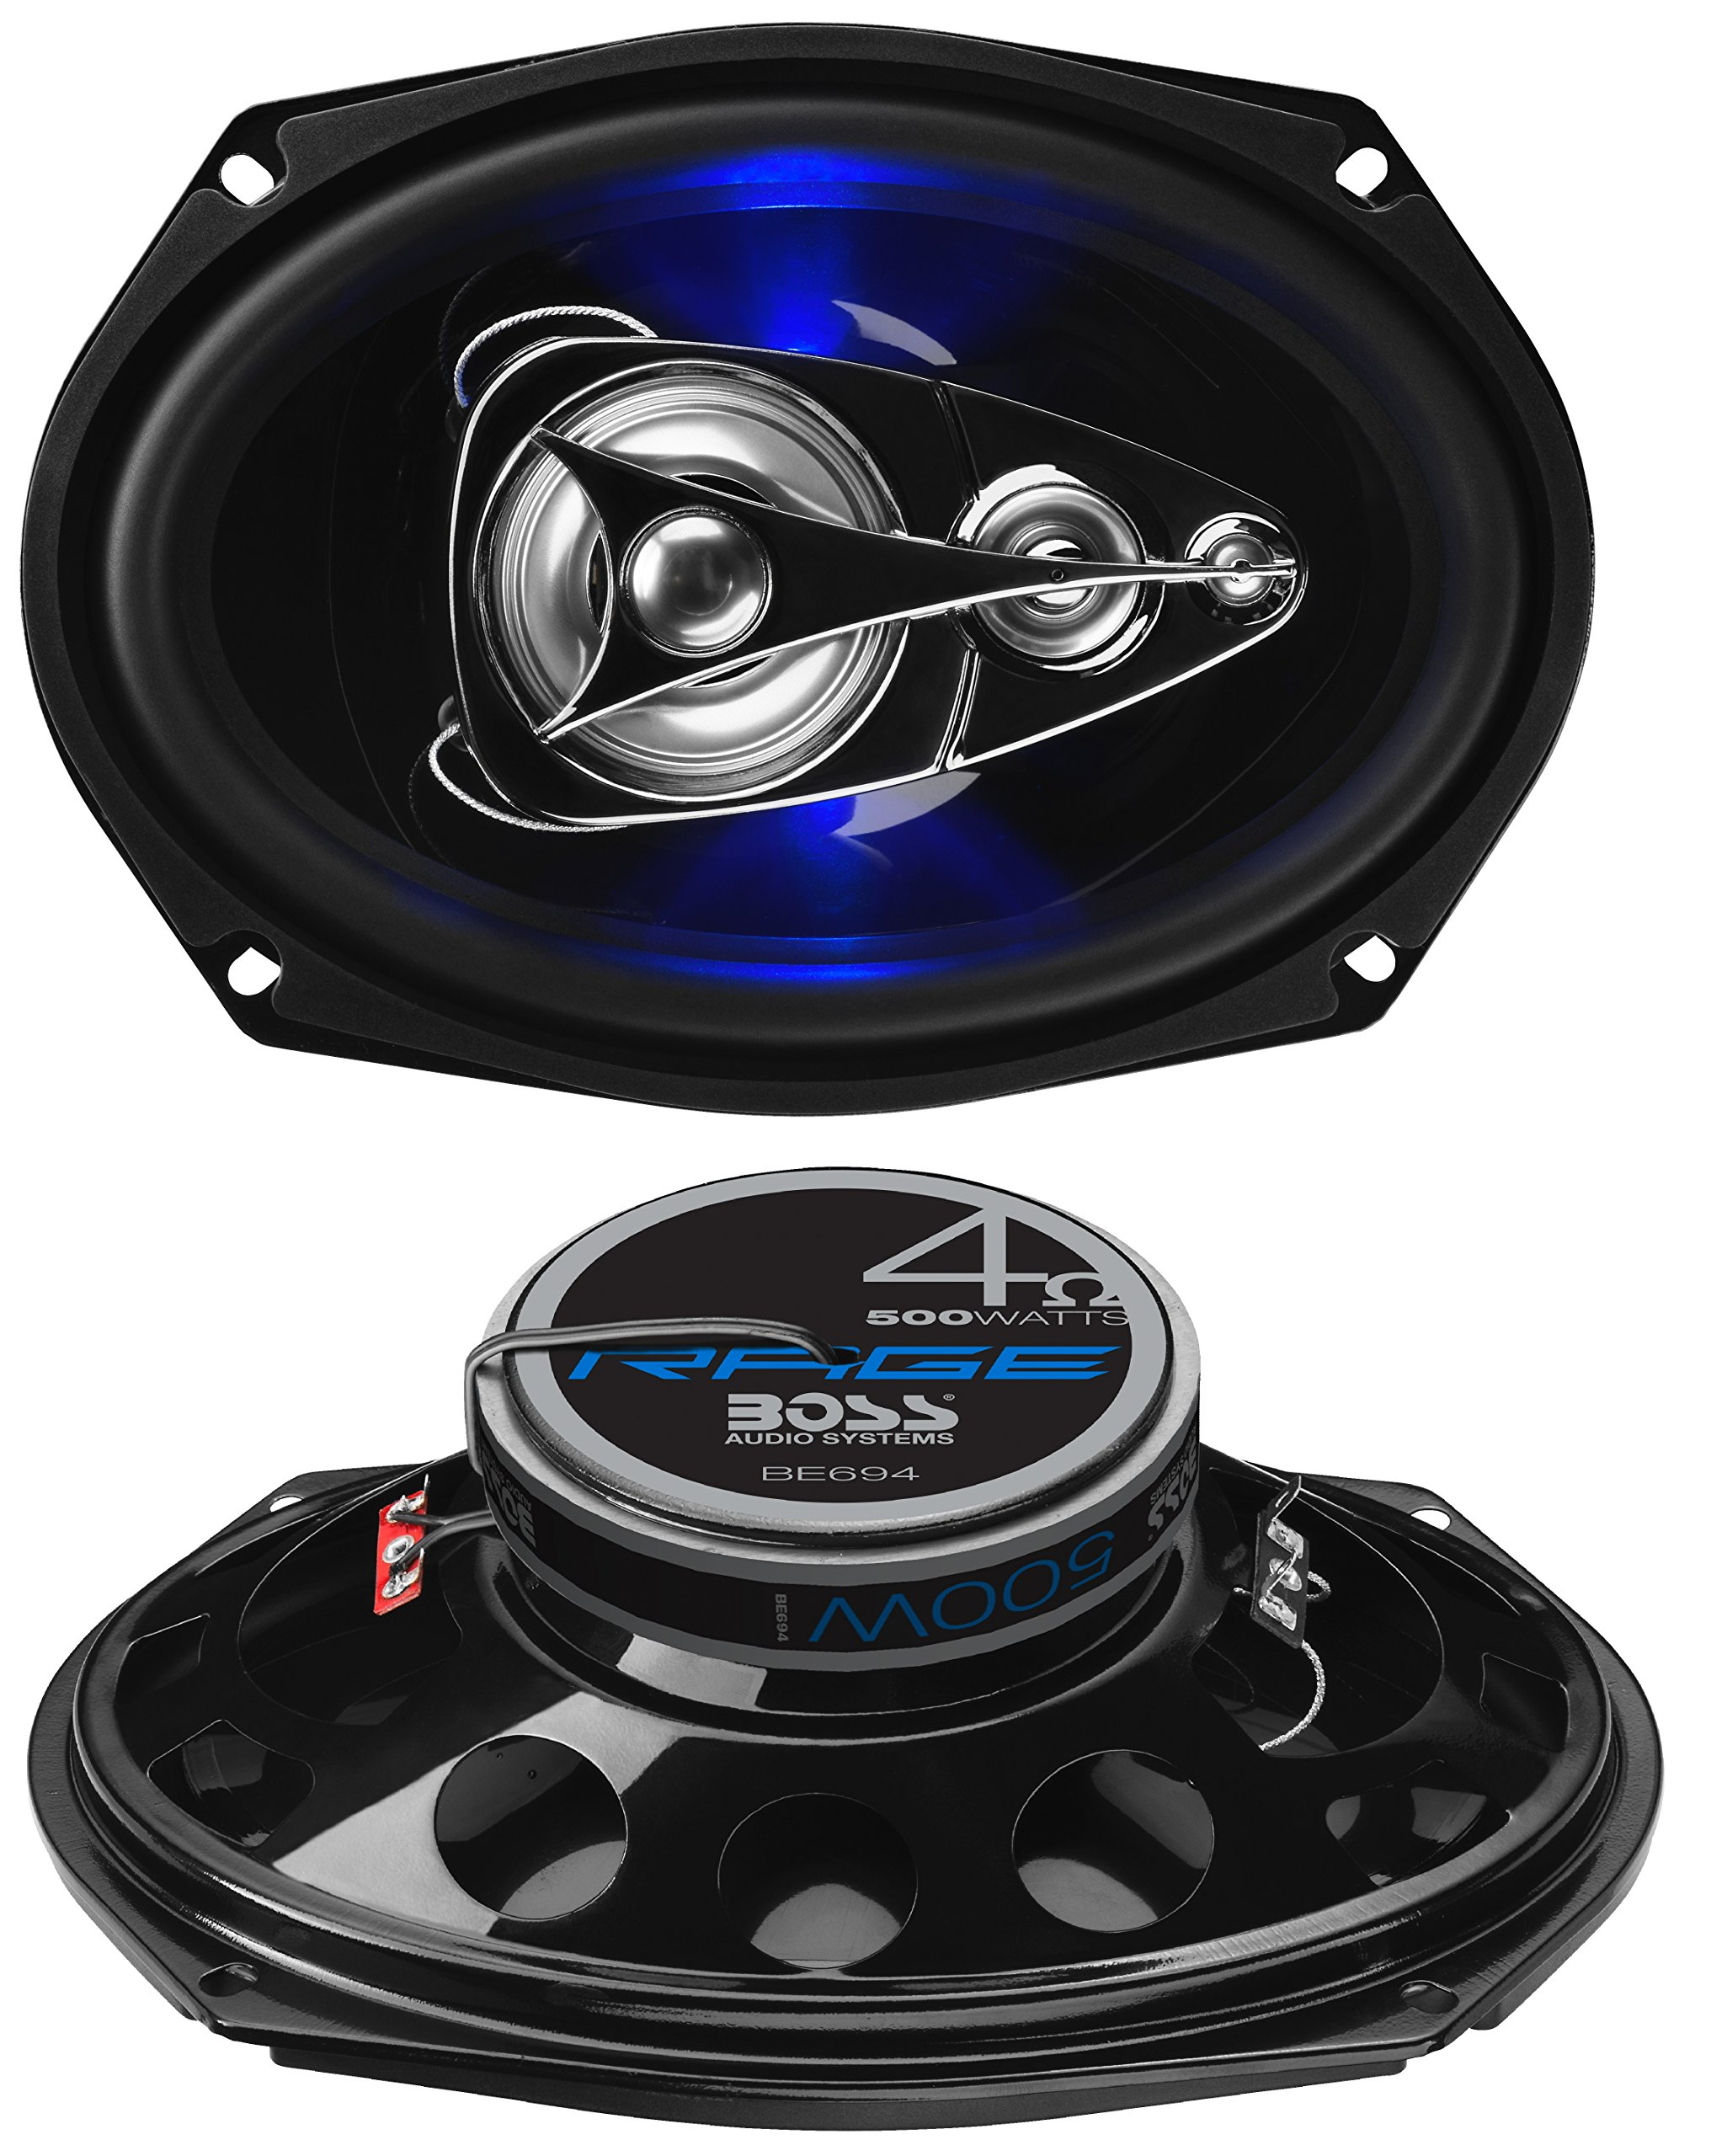 Boss Audio Systems BE694 500 Watt Per Pair, 6 x 9 Inch, Full Range, 4 Way Car Speakers Sold in Pairs